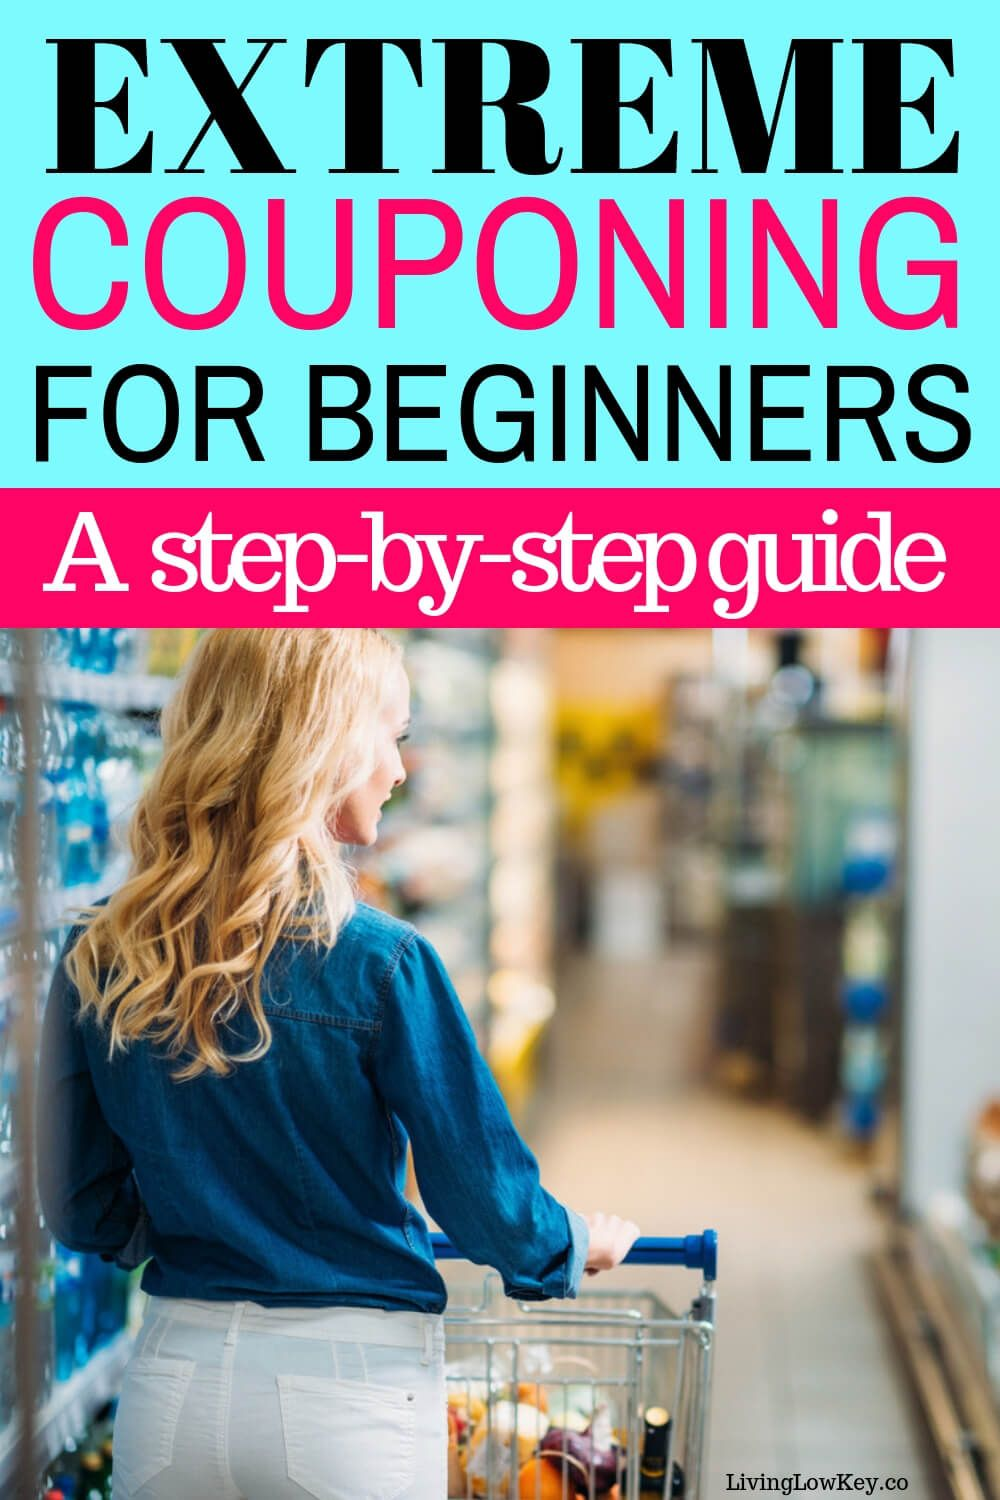 A simple how to start couponing for beginners guide! This step by step guide will teach you everything you need to get started to becoming a successful couponer. #extremecouponing #couponingforbeginners #howtostartcouponing #savingmoney #budgeting #frugalliving #couponing